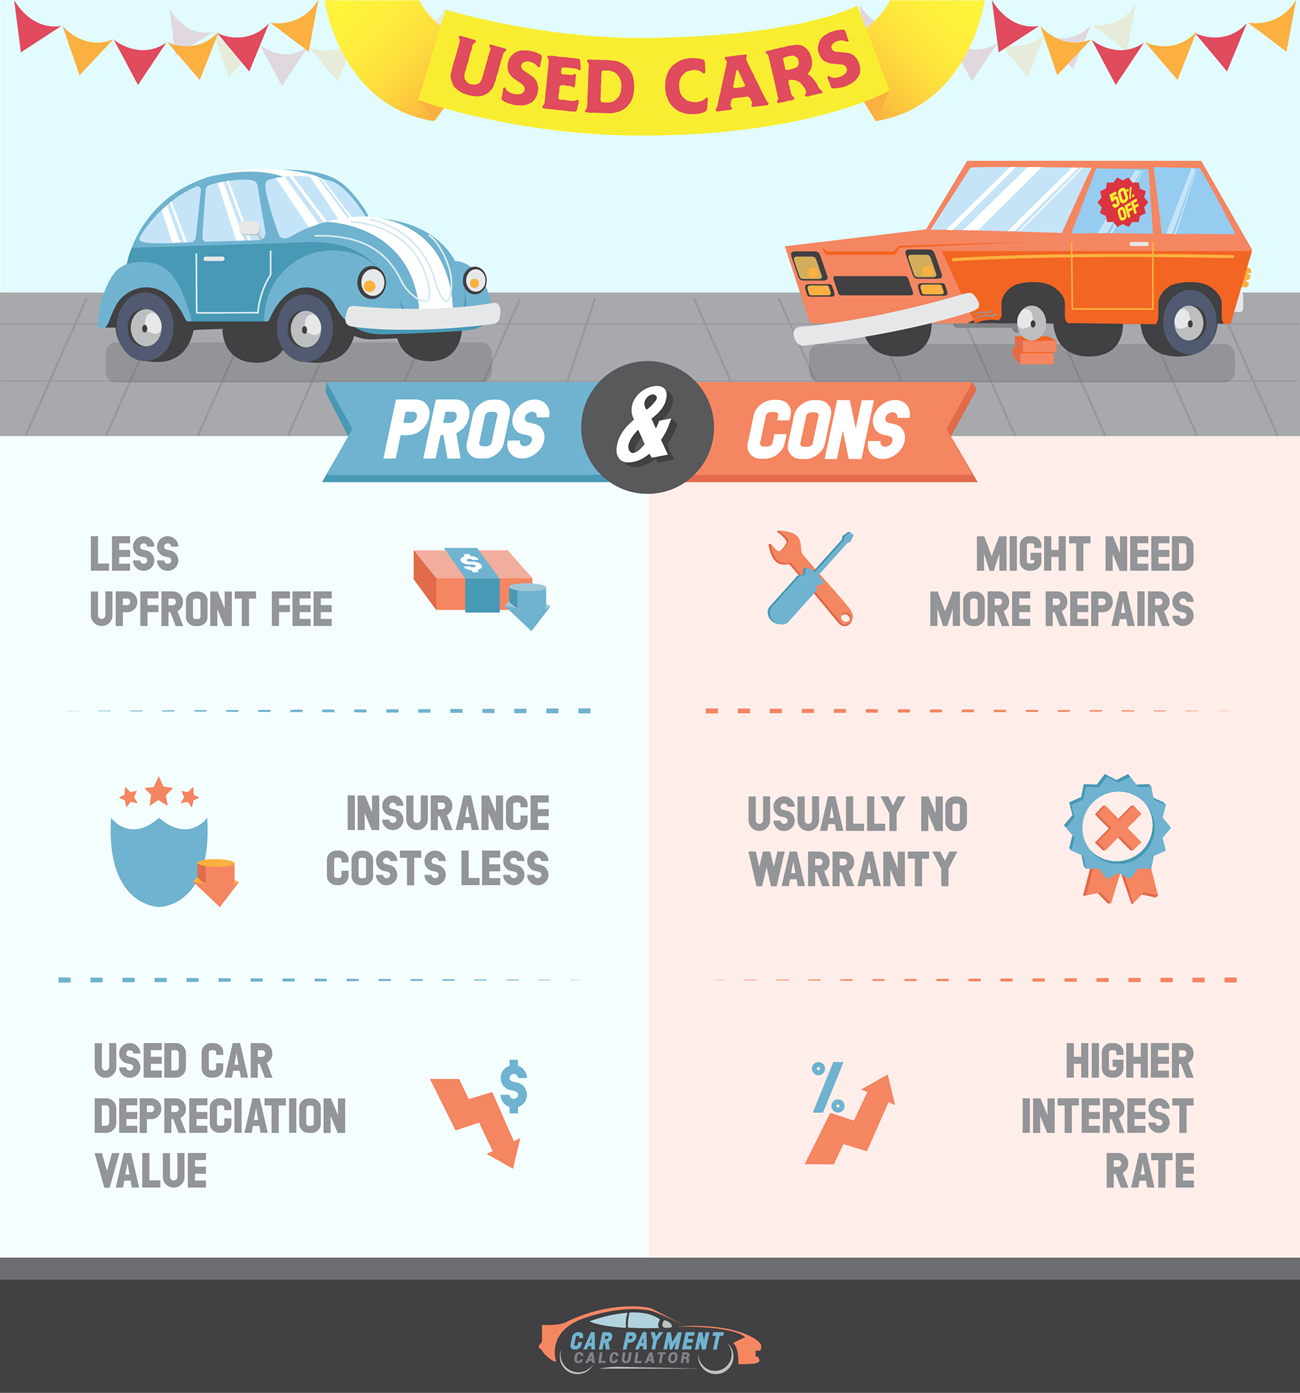 Pros and Cons for Buying Used Cars.